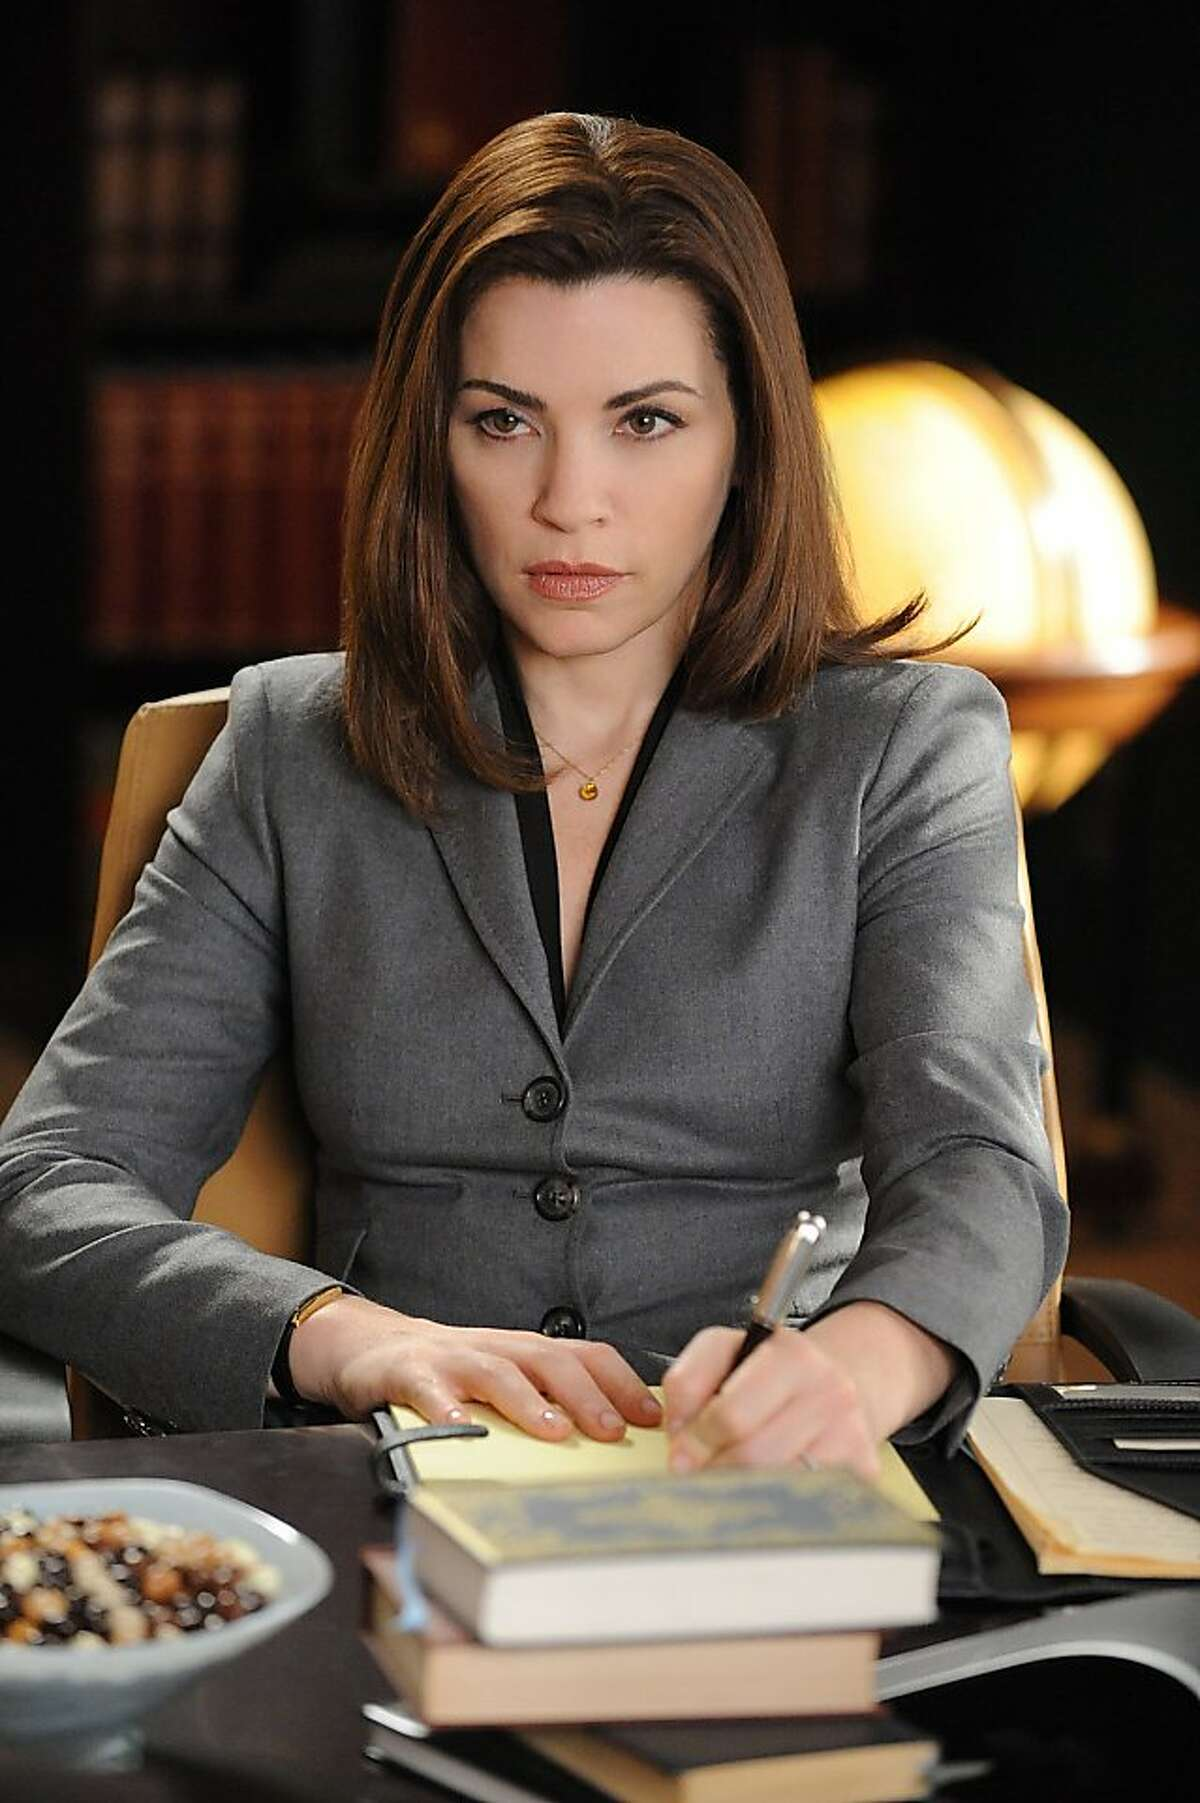 """In this publicity image released by CBS, Julianna Margulies is shown in a scene from """"The Good Wife."""""""